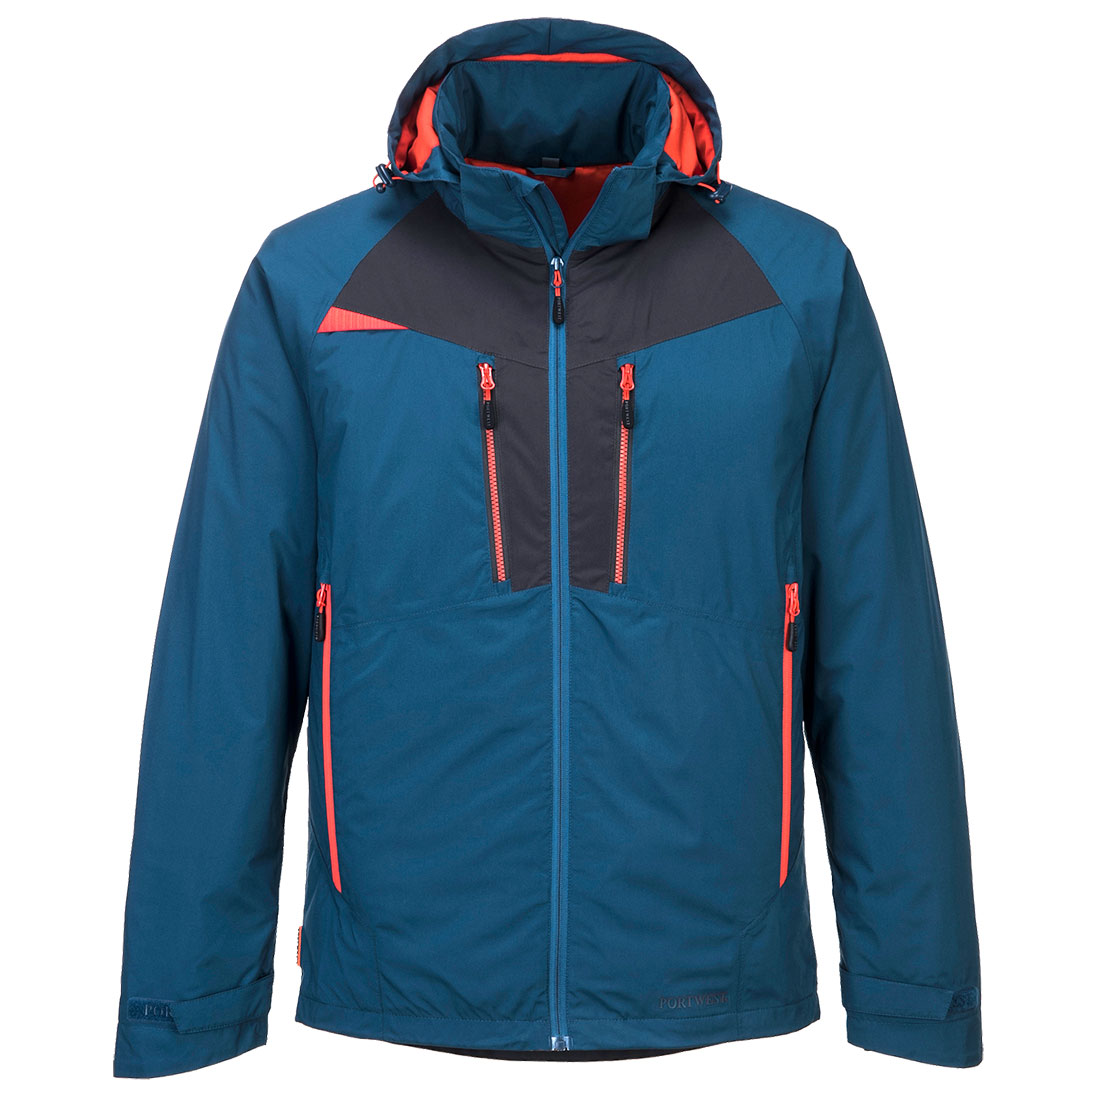 DX4 Winter Jacket Metro Blue Small